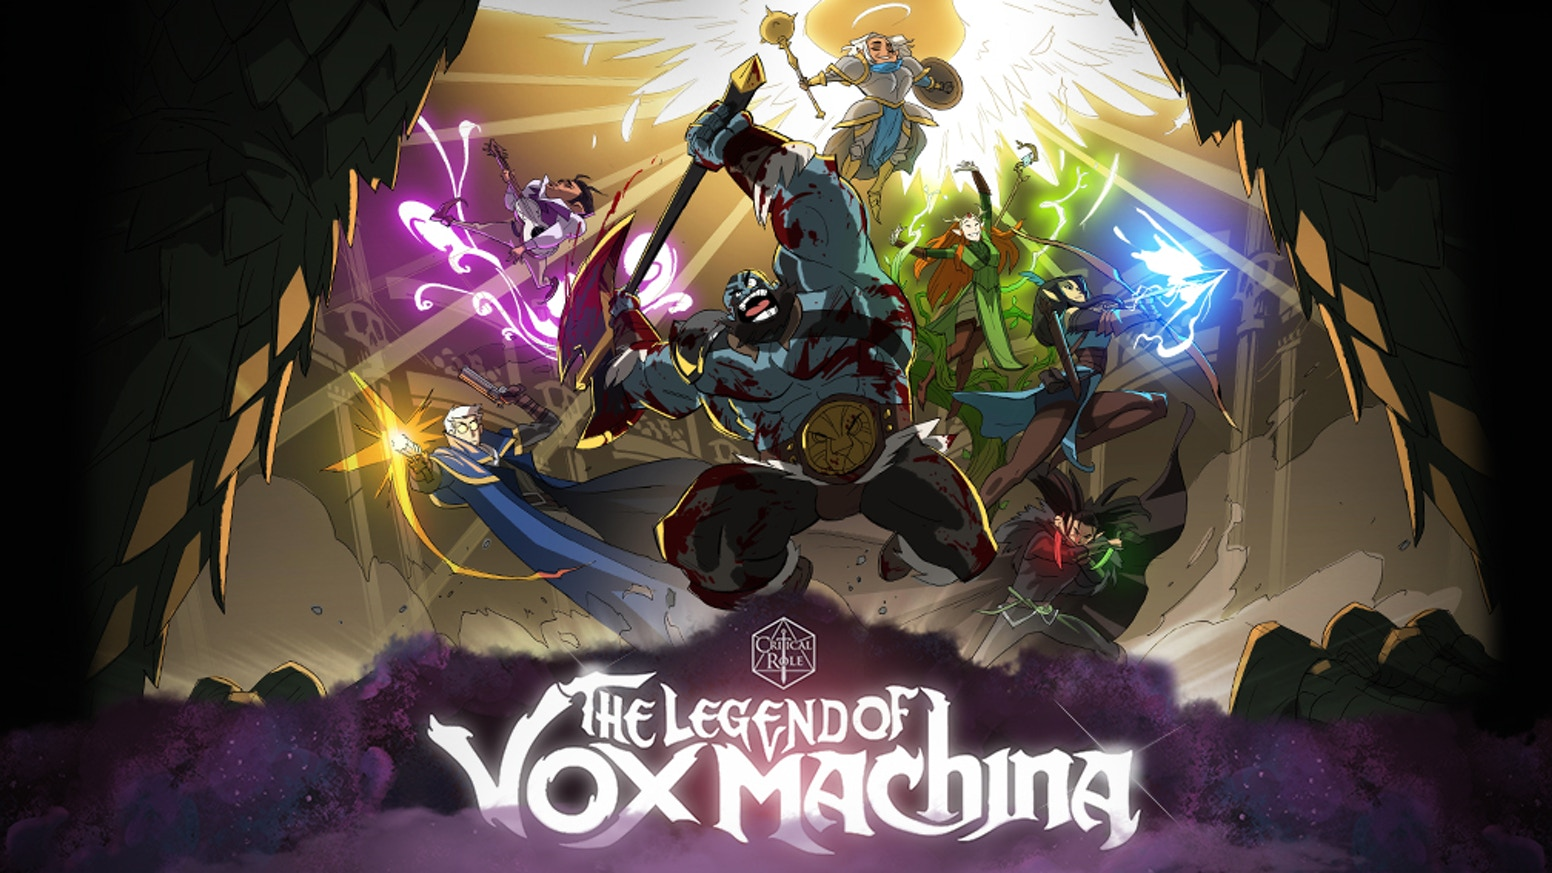 Critical Role: The Legend of Vox Machina Animated Special by